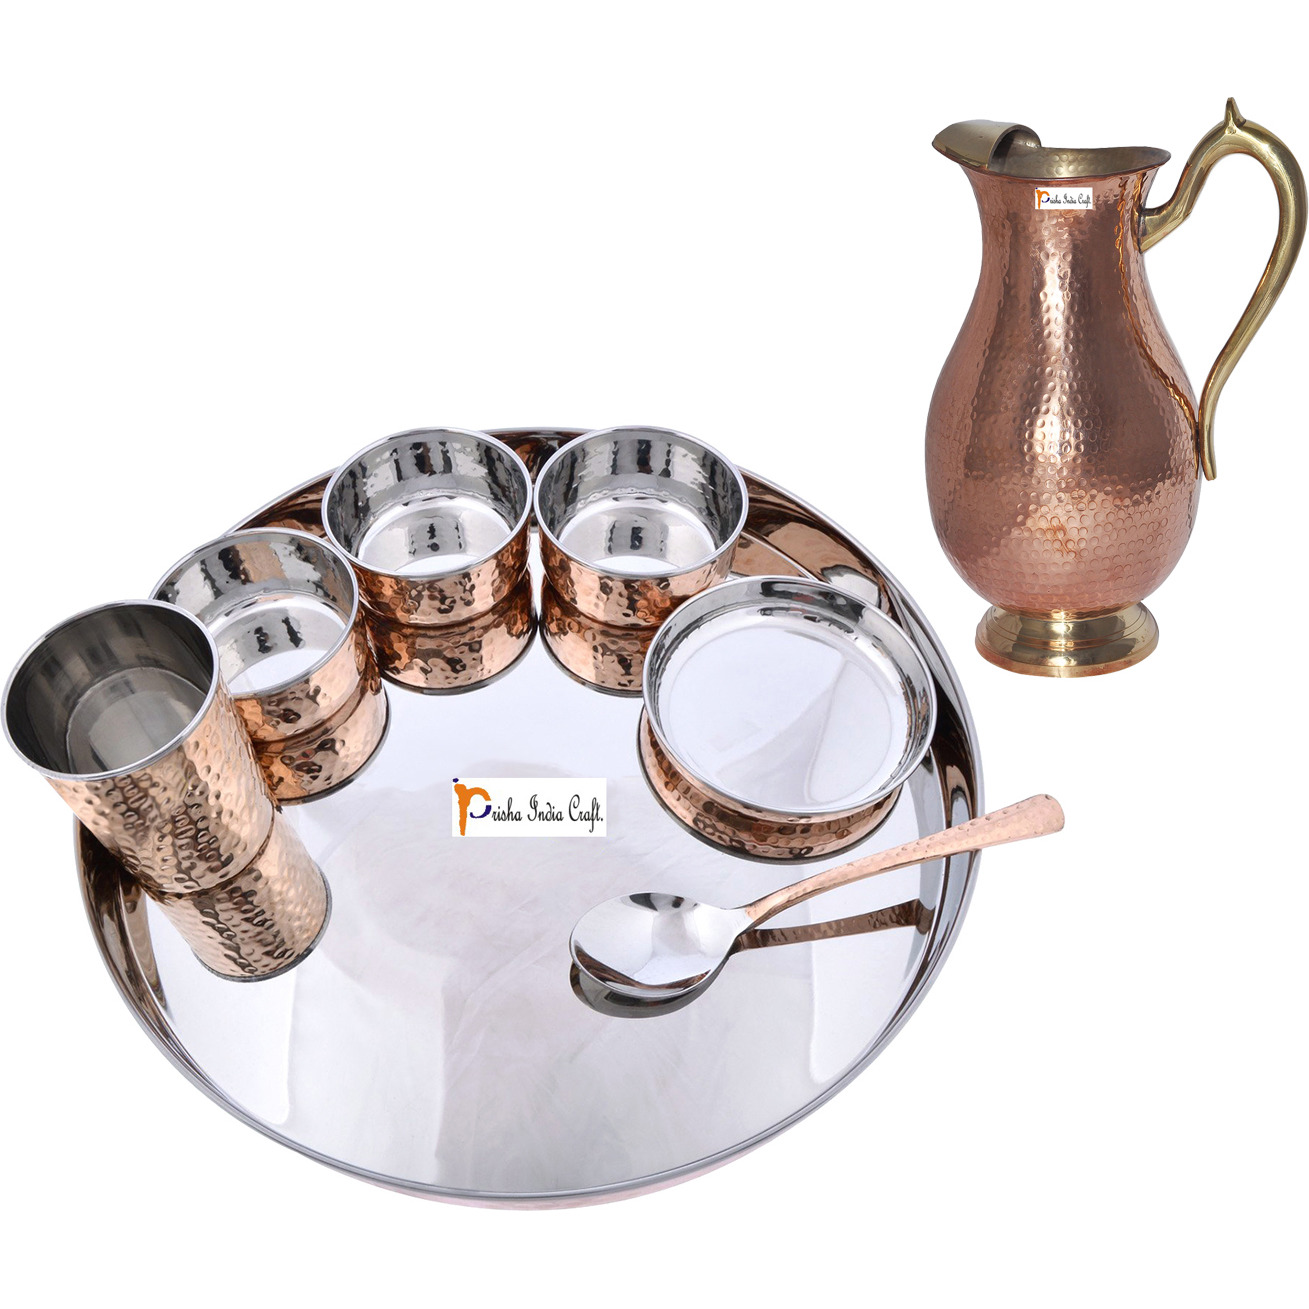 Prisha India Craft B. Dinnerware Traditional Stainless Steel Copper Dinner Set of Thali Plate, Bowls, Glass and Spoon, Dia 13  With 1 Pure Copper Mughal Pitcher Jug - Christmas Gift